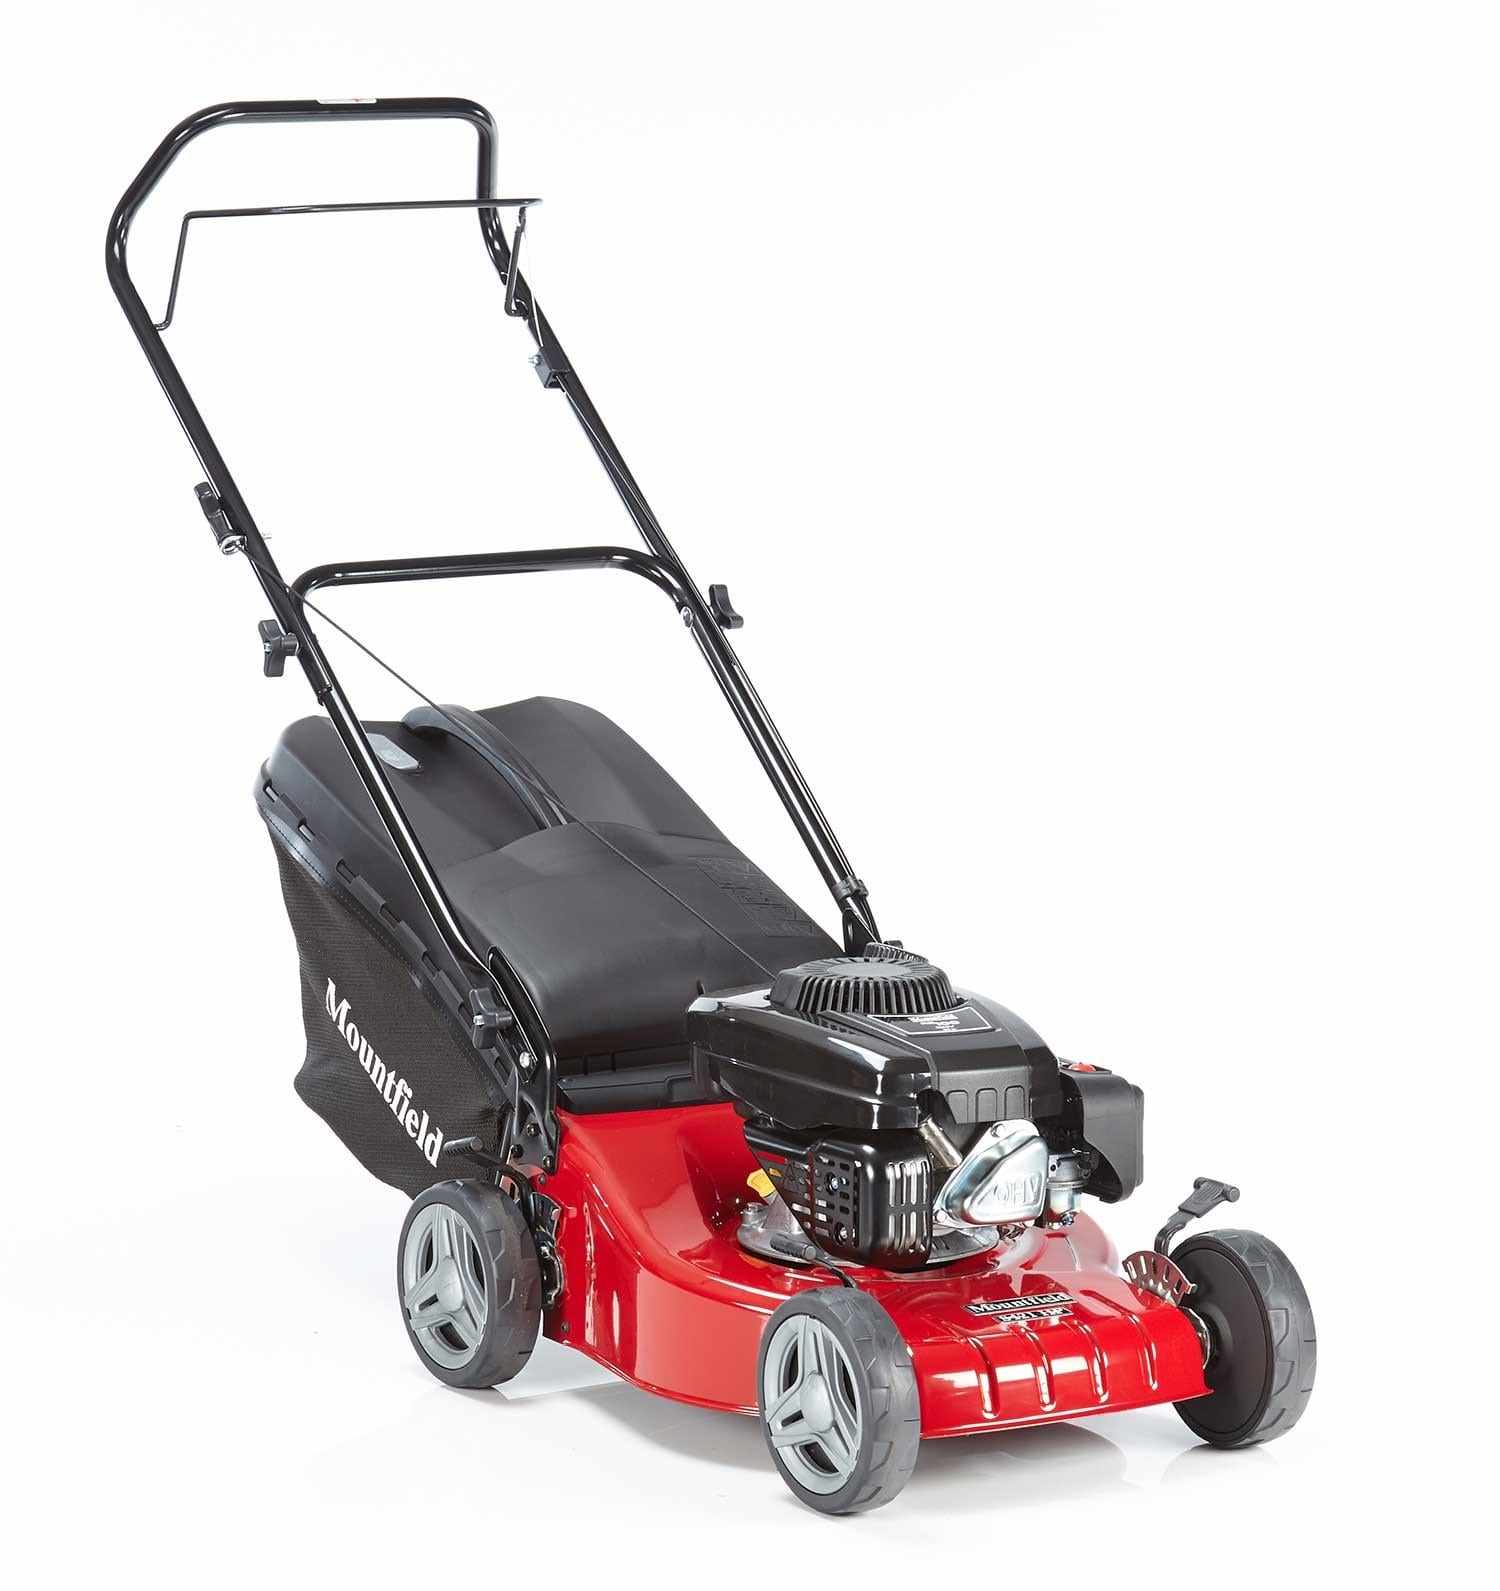 Mountfield S421 HP 41cm Hand Propelled Lawnmower